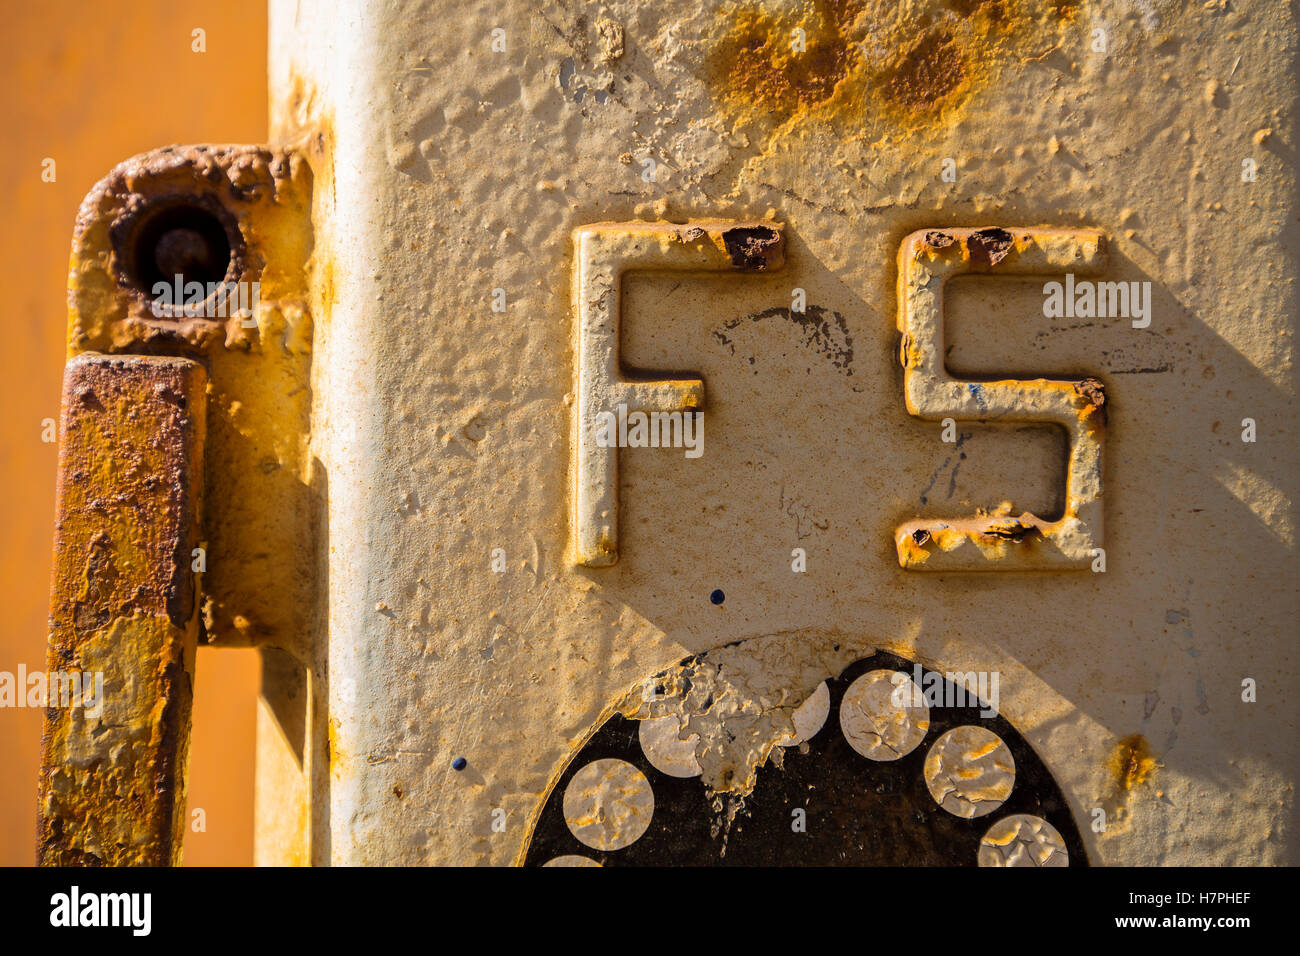 Emergency phone train Station of Vernazza, Riviera de Levanto, fishing village, Cinque Terre. Genoa. Mediterranean - Stock Image